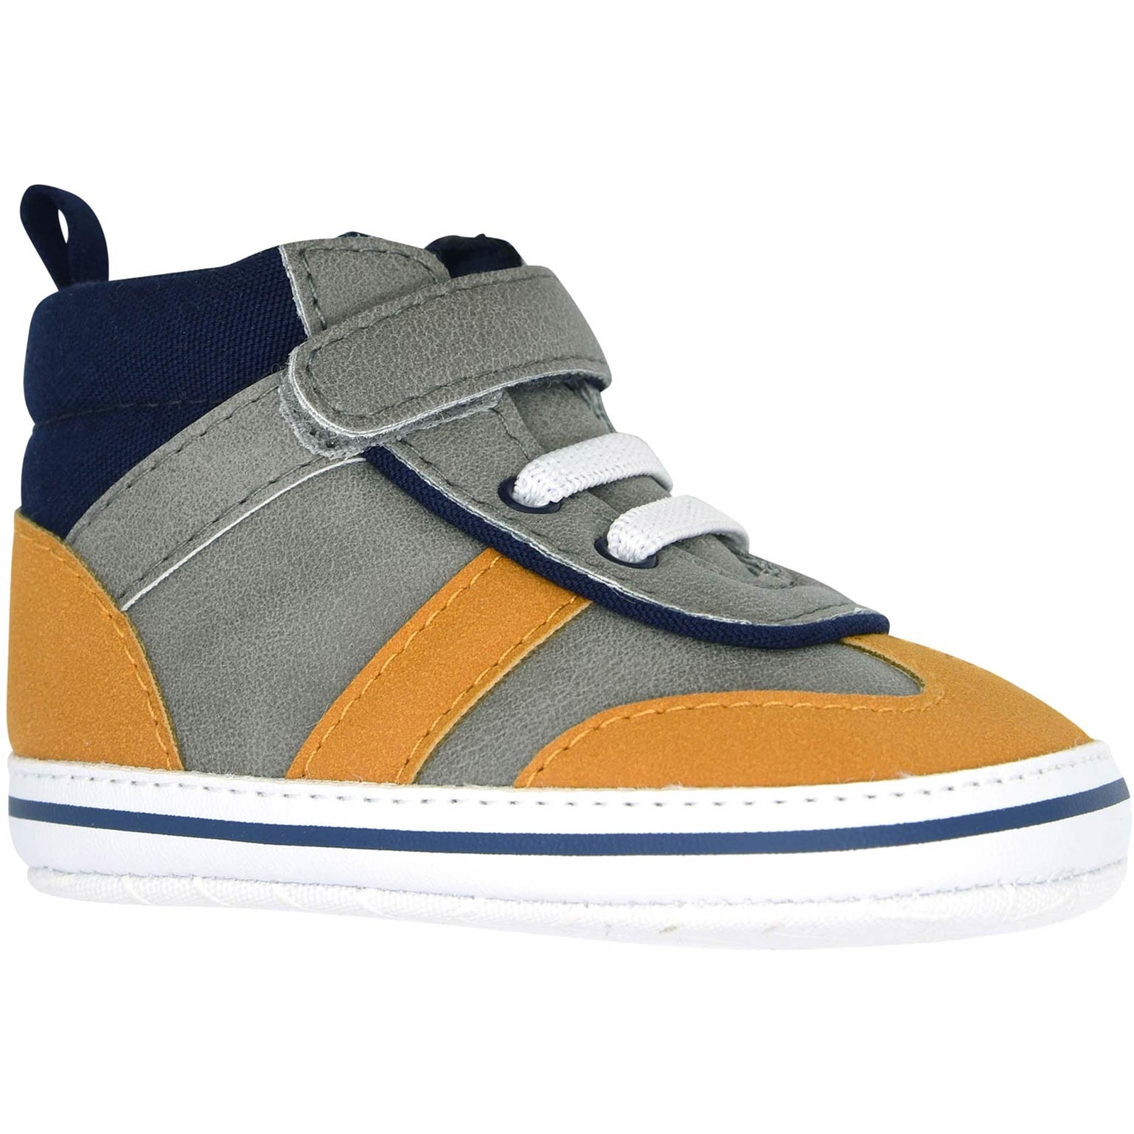 Carter's Infant Boys High Top Sneakers